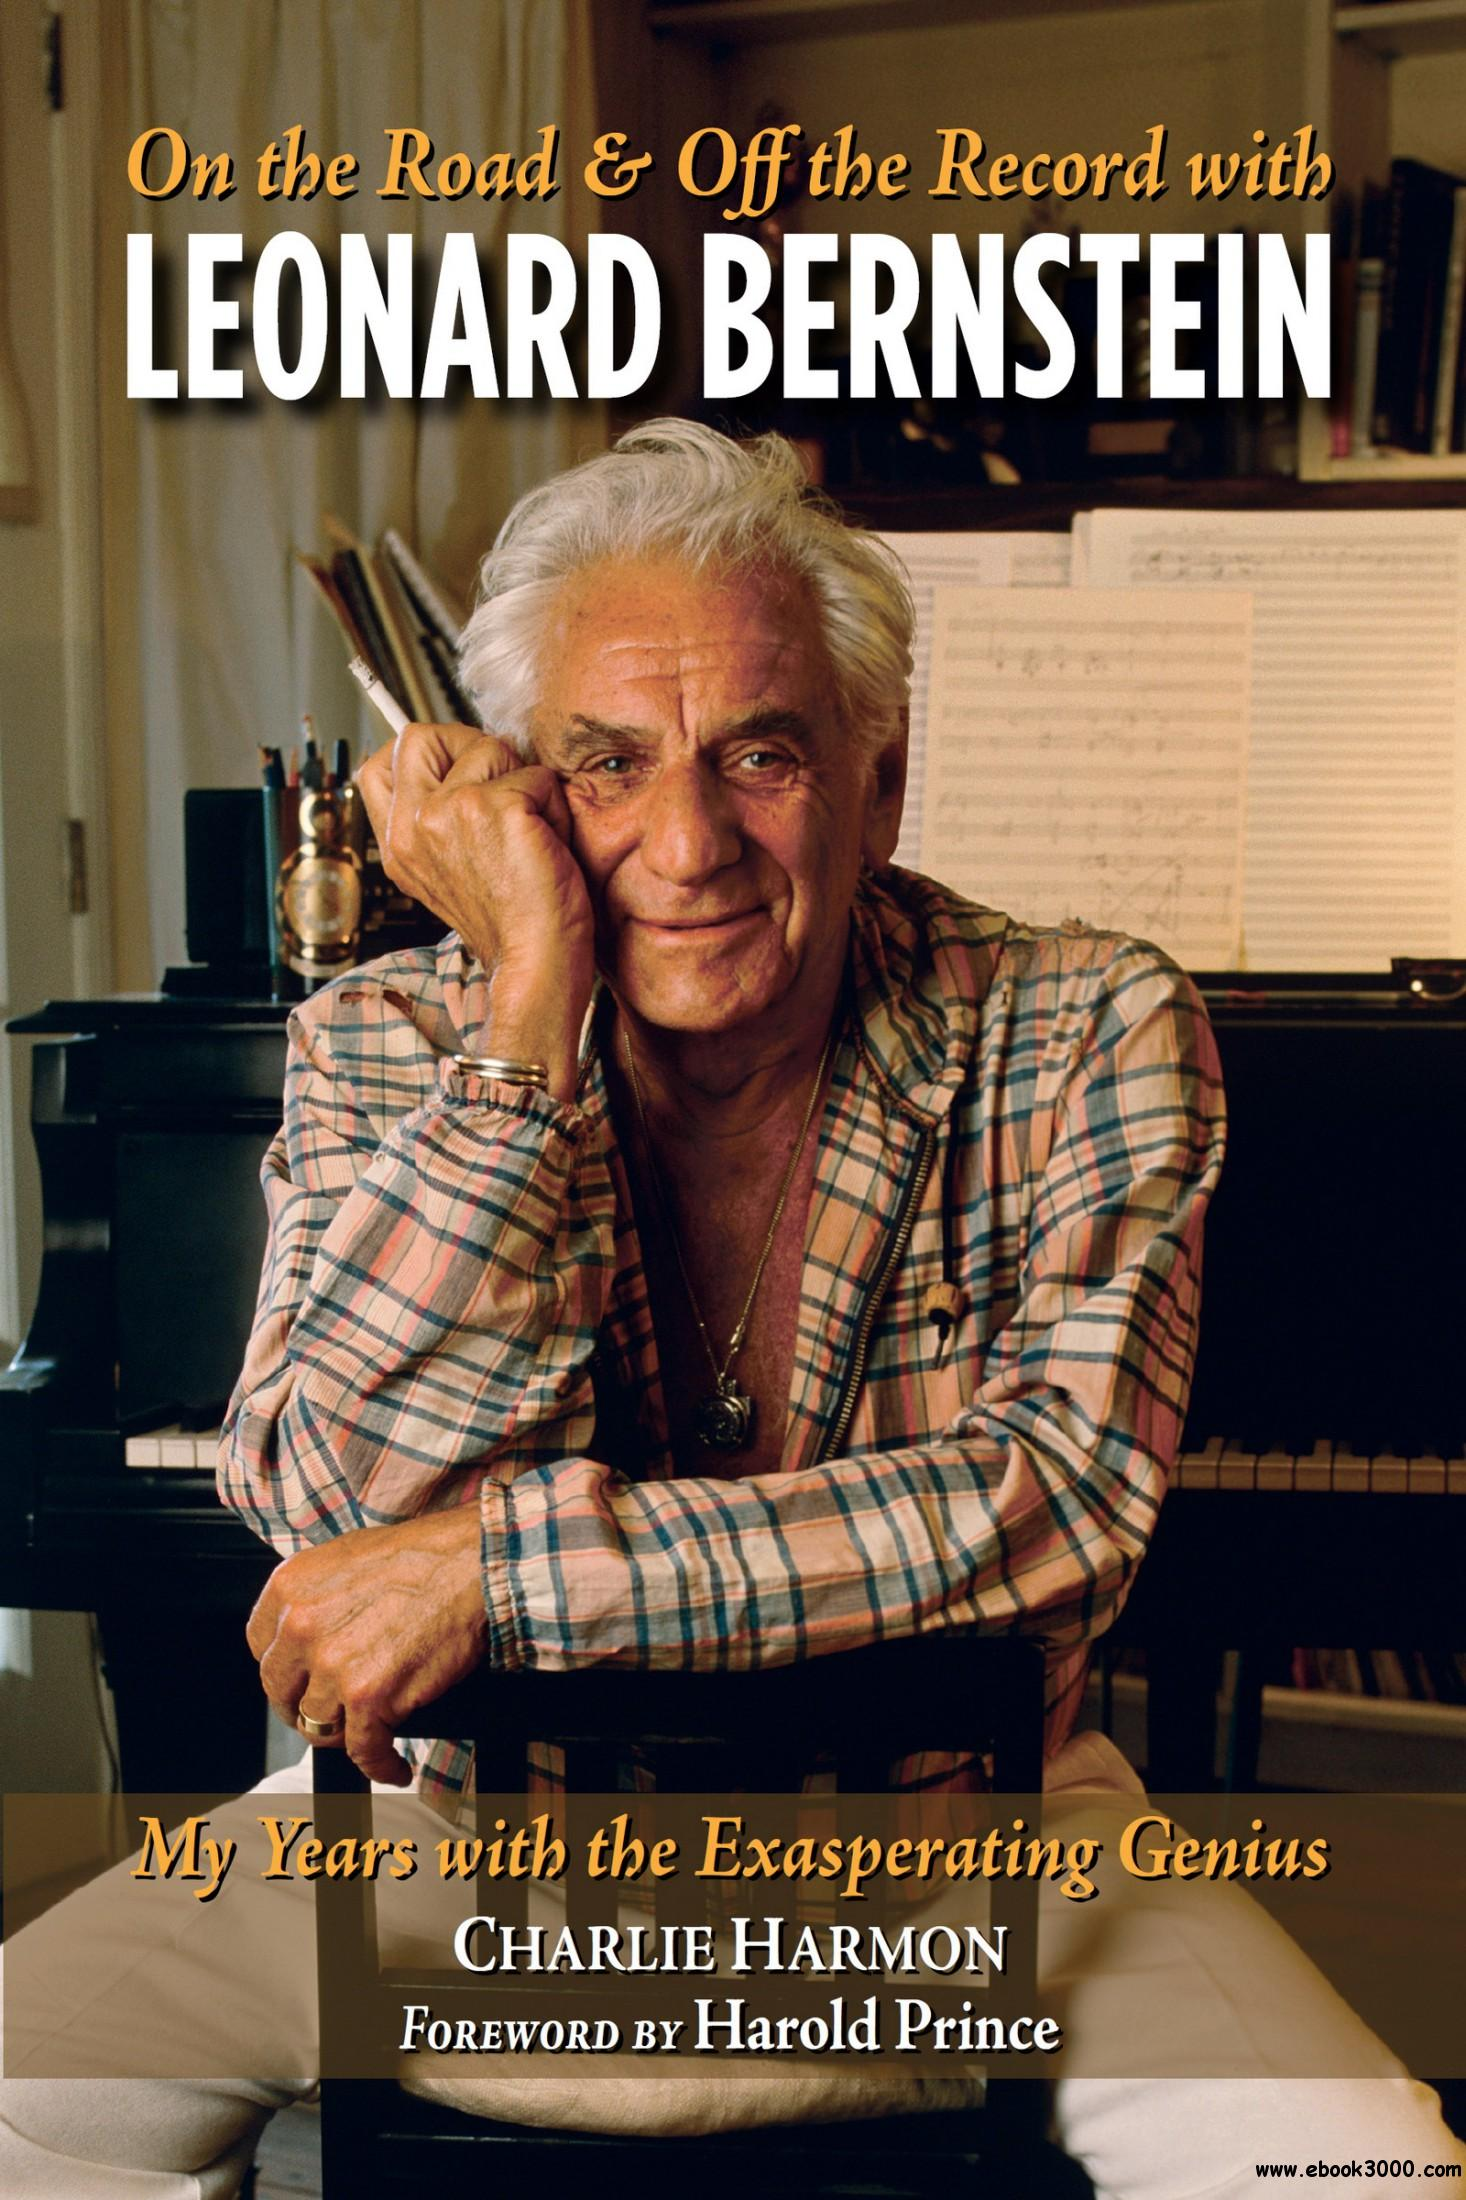 On the Road and Off the Record with Leonard Bernstein: My Years with the Exasperating Genius